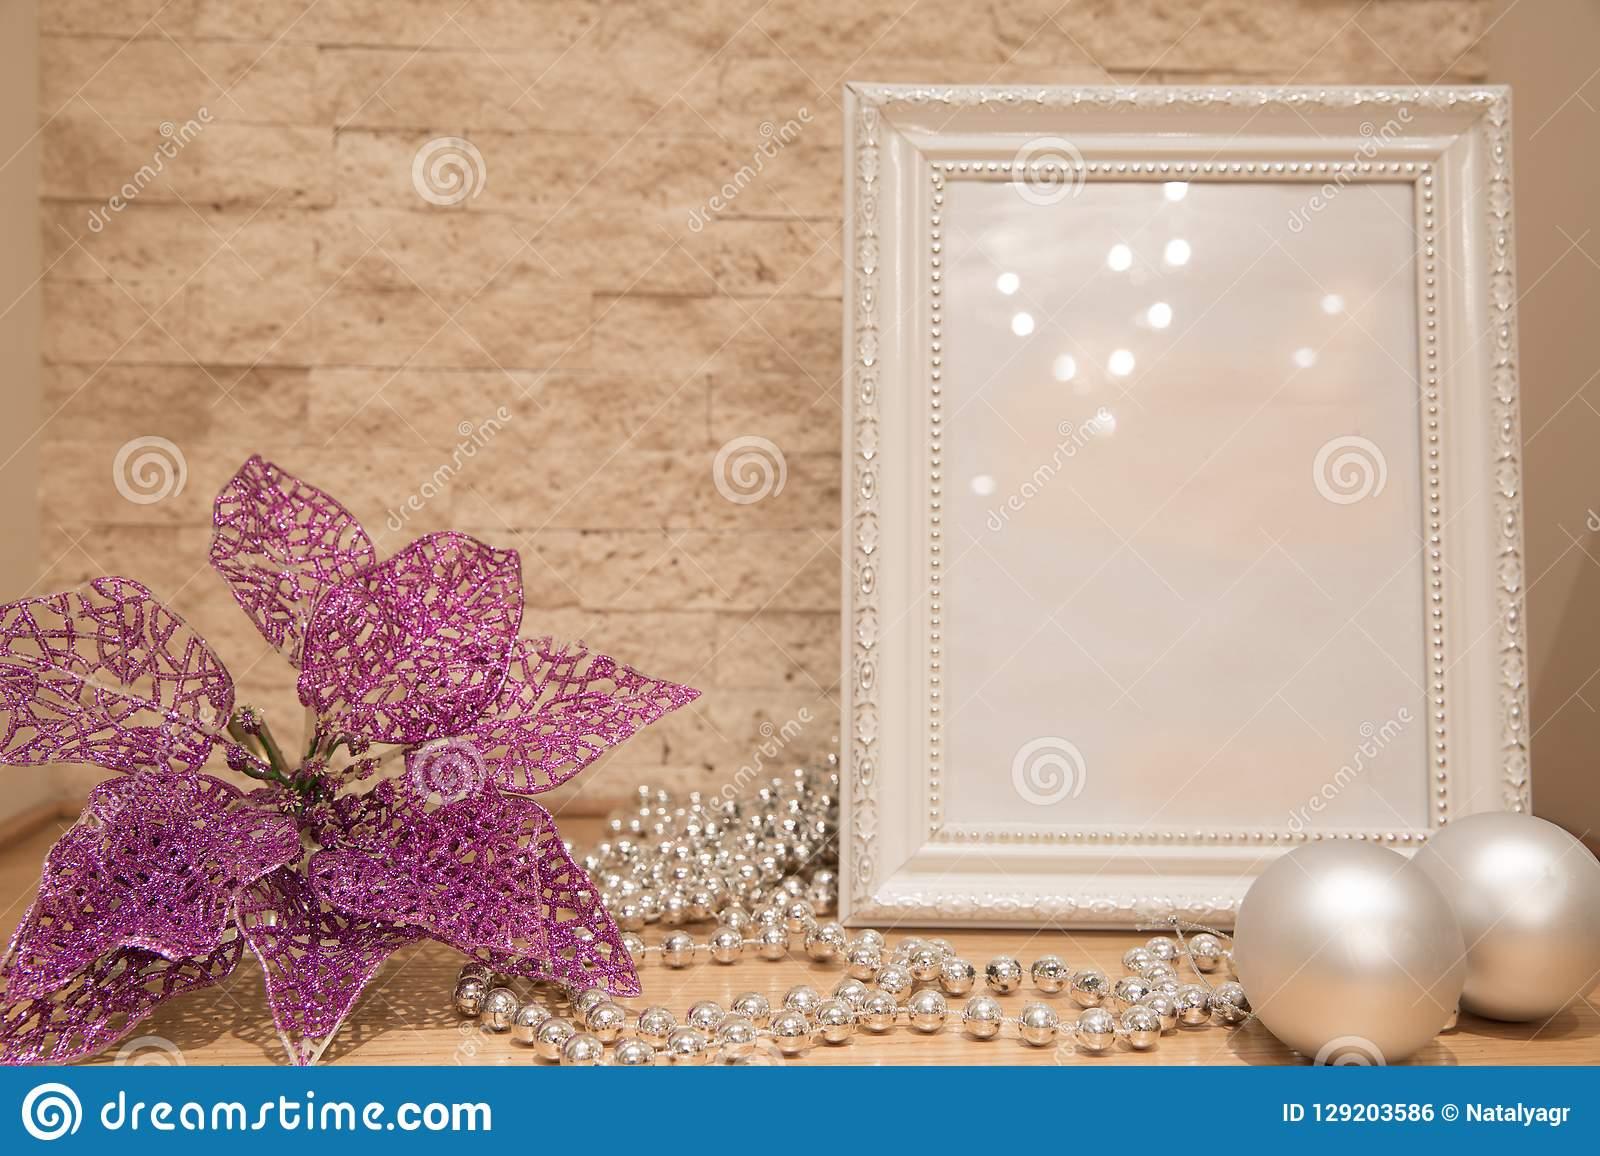 Christmas mock up, silver beads, Christmas balls, flowers decoration and brick wall background. Copy space.